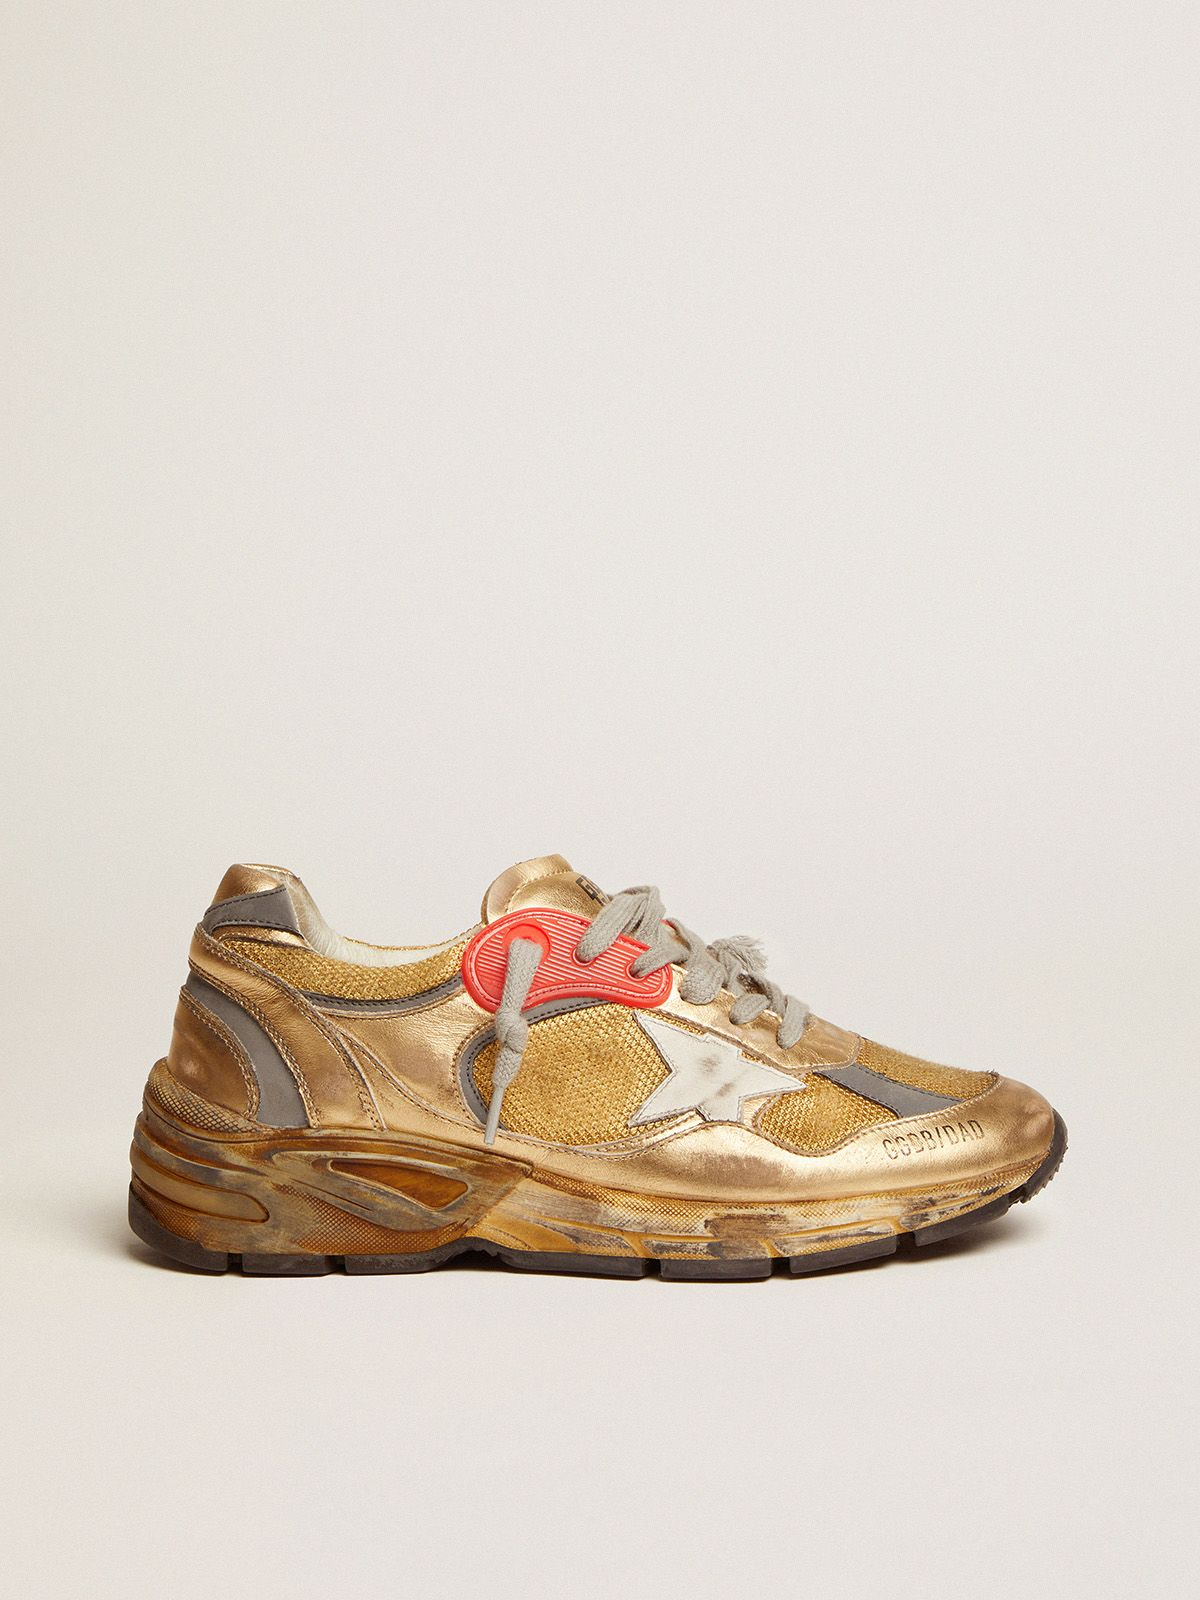 Women's gold Dad-Star sneakers